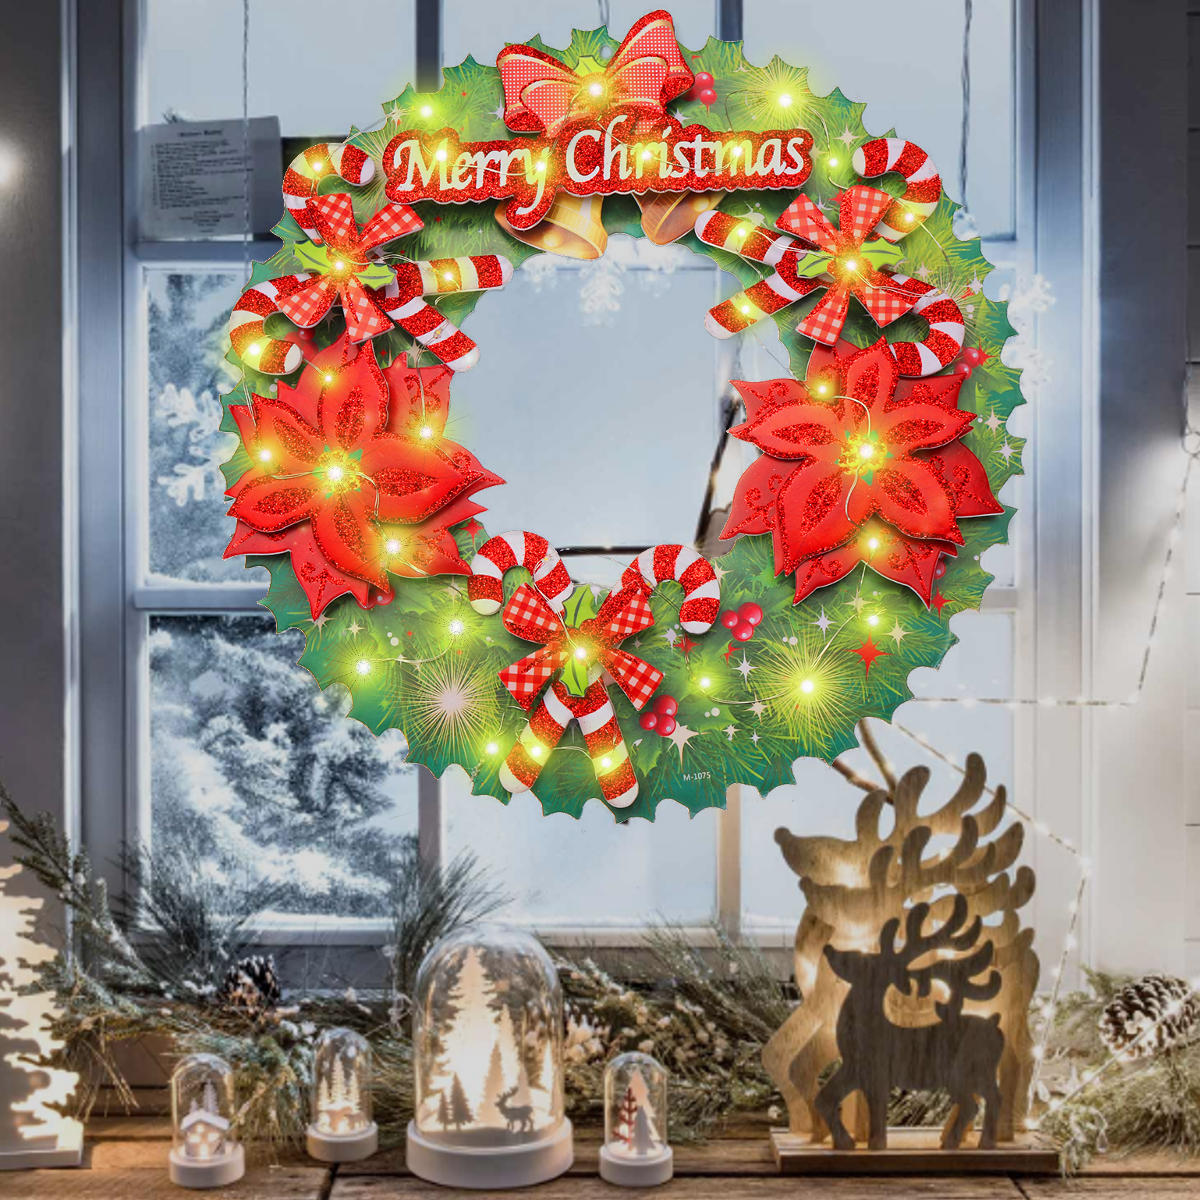 Battery Power Led Light Up Wreath Hanging Ornaments Christmas Home Party Decor Holiday String Light